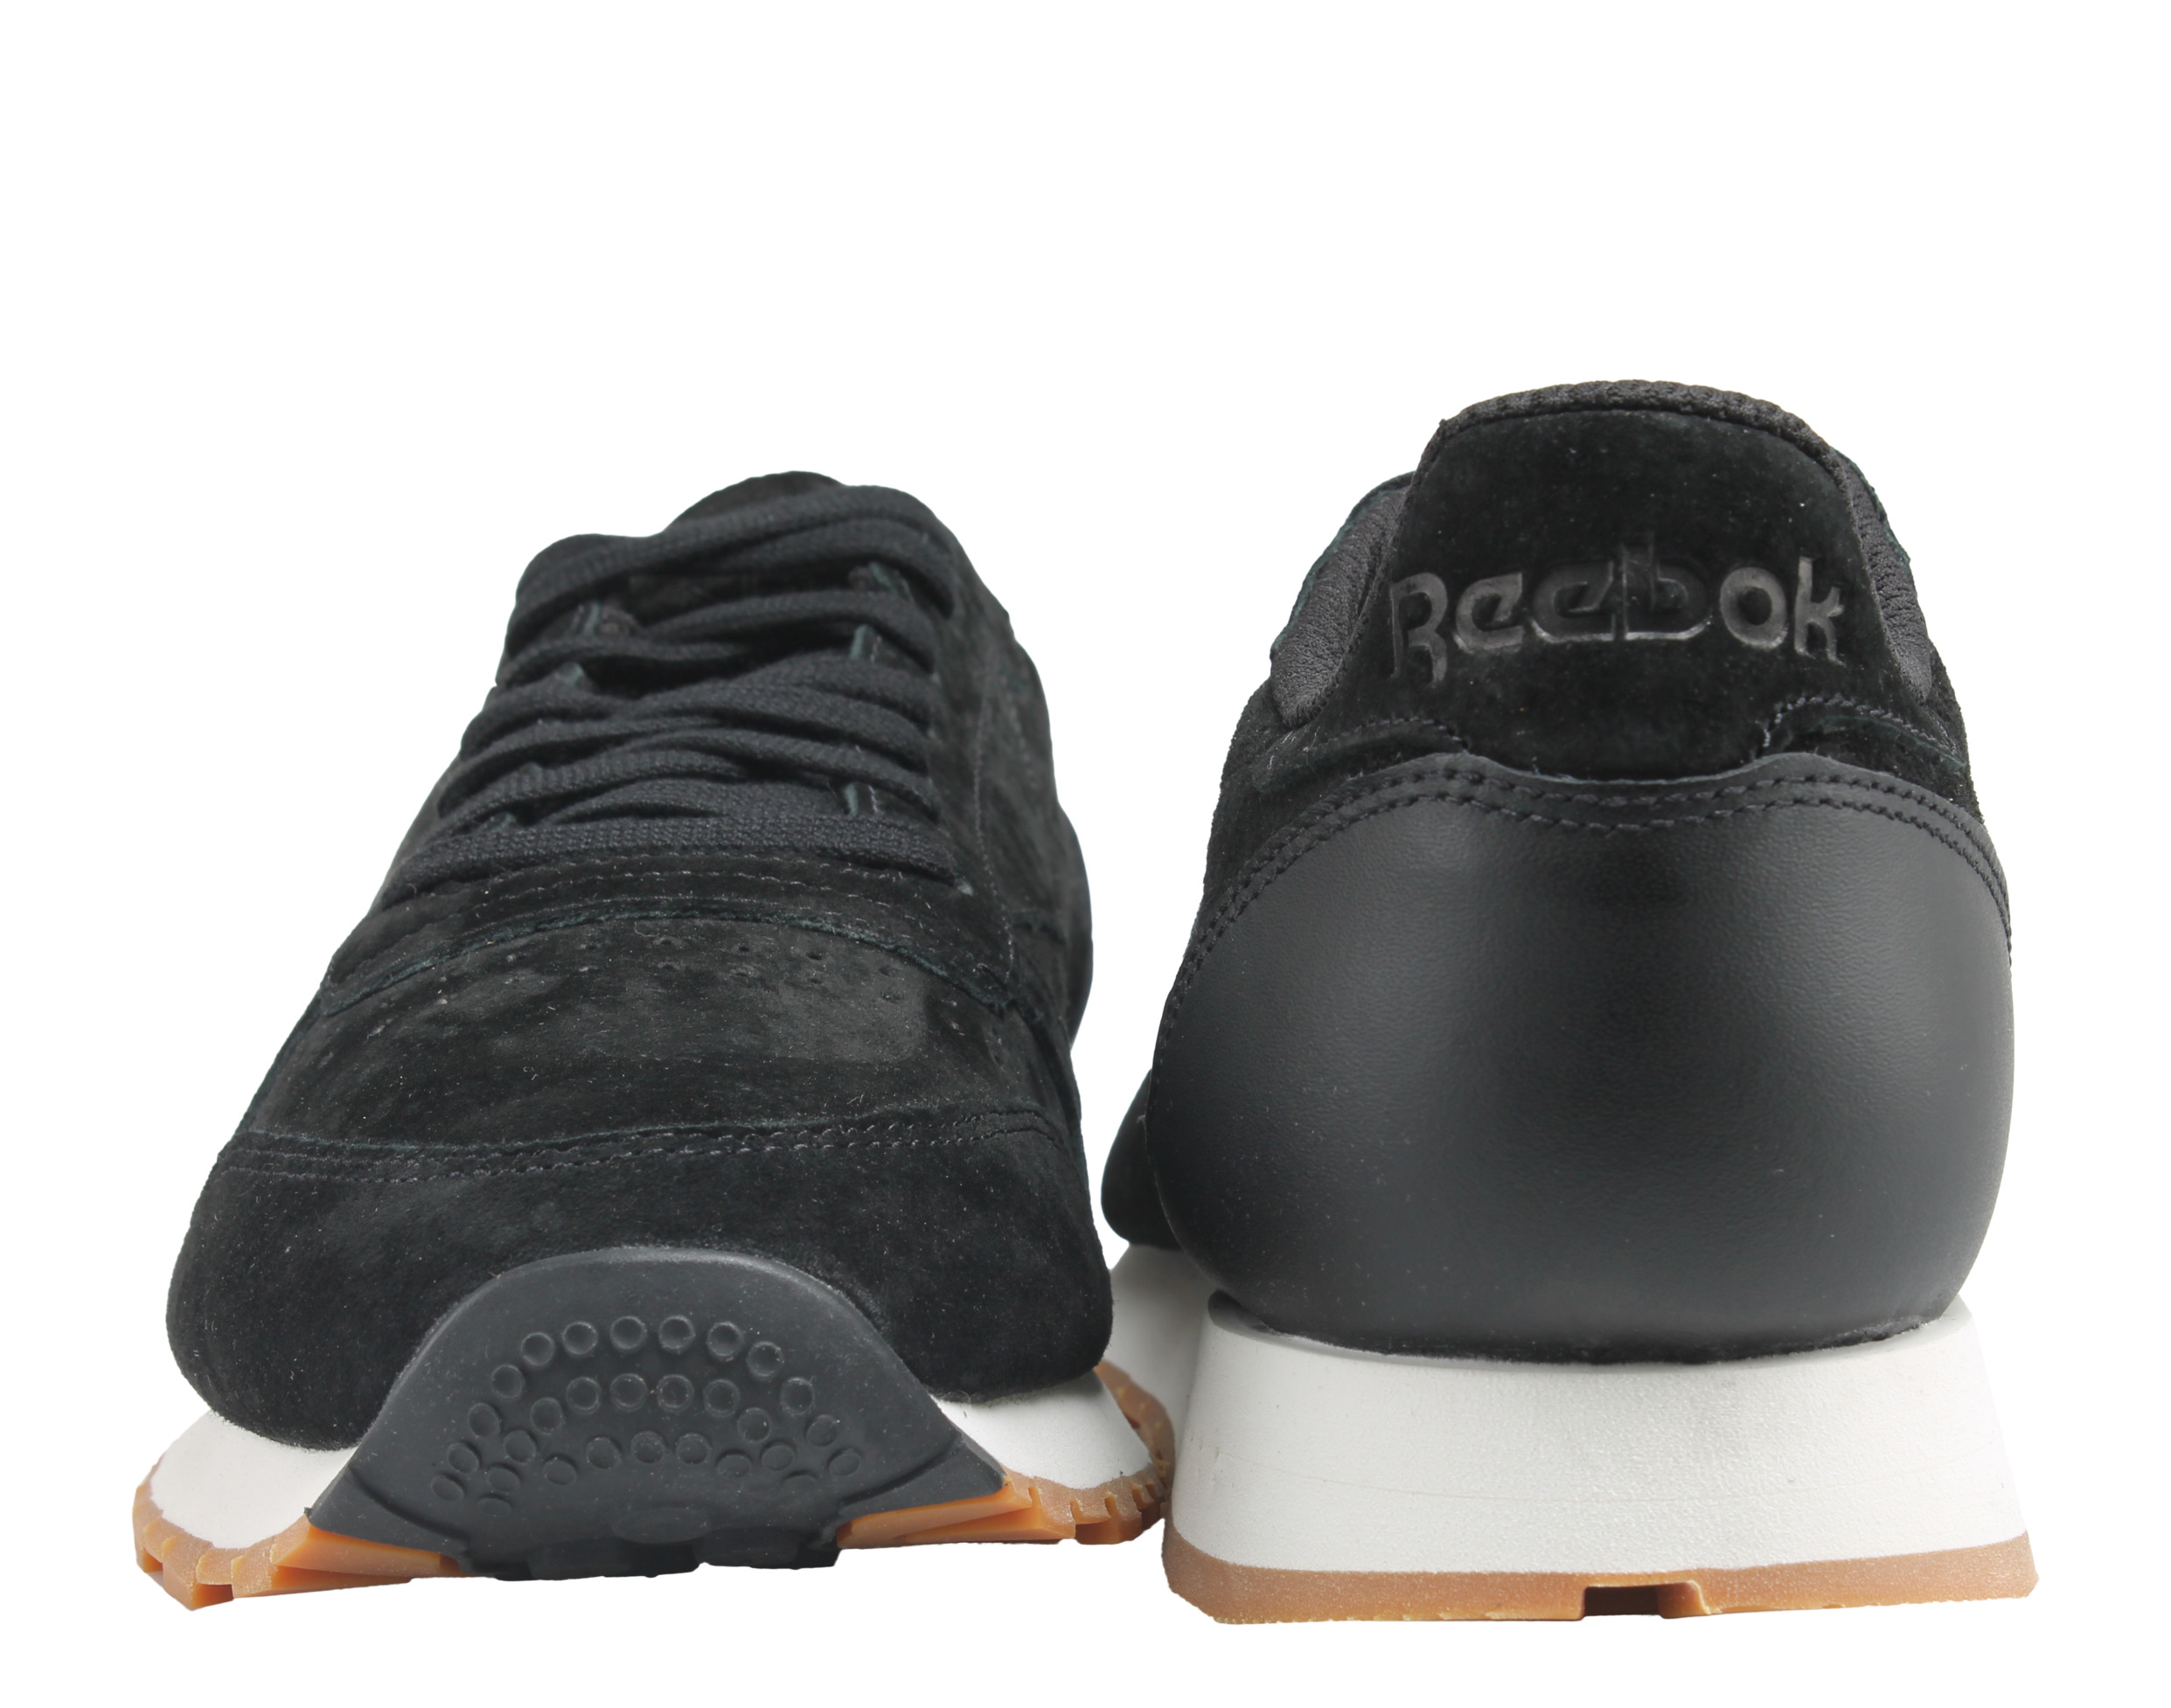 87f2d60277c Reebok - Reebok Classic Leather SG Smoky Black Chalk Gum Men s Running Shoes  BS7892 - Walmart.com